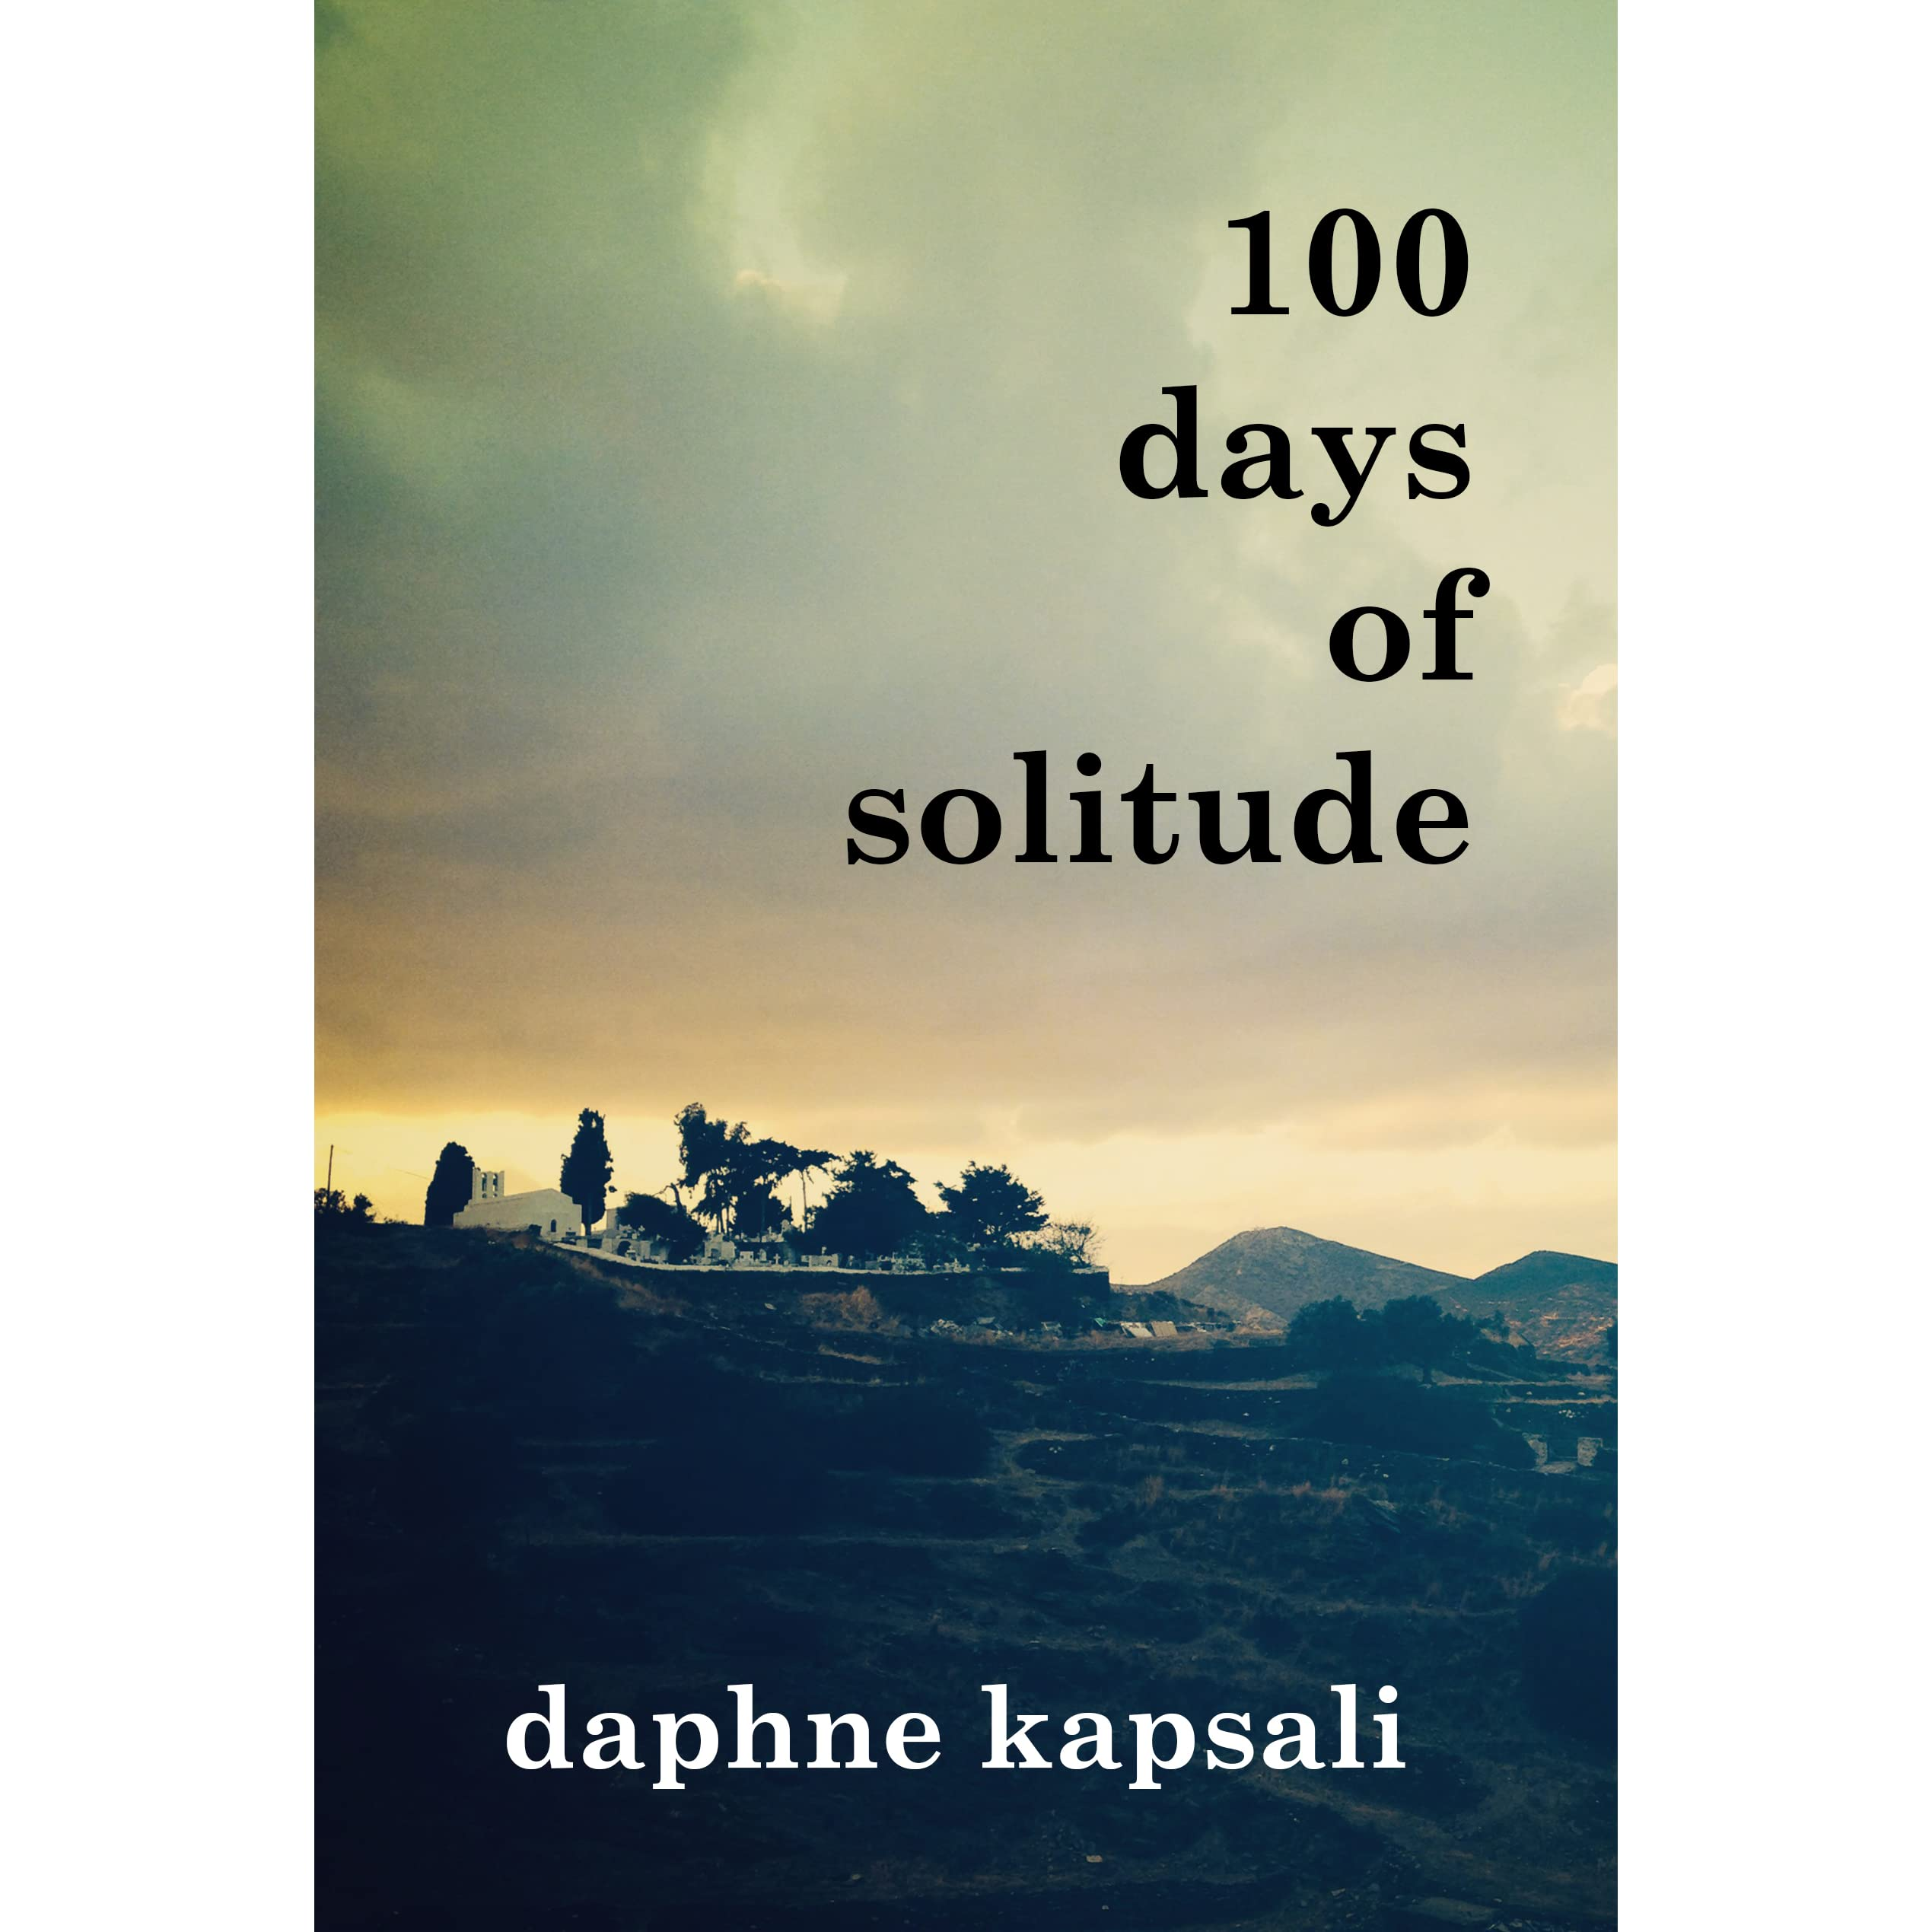 days of solitude by daphne kapsali reviews discussion 100 days of solitude by daphne kapsali reviews discussion bookclubs lists